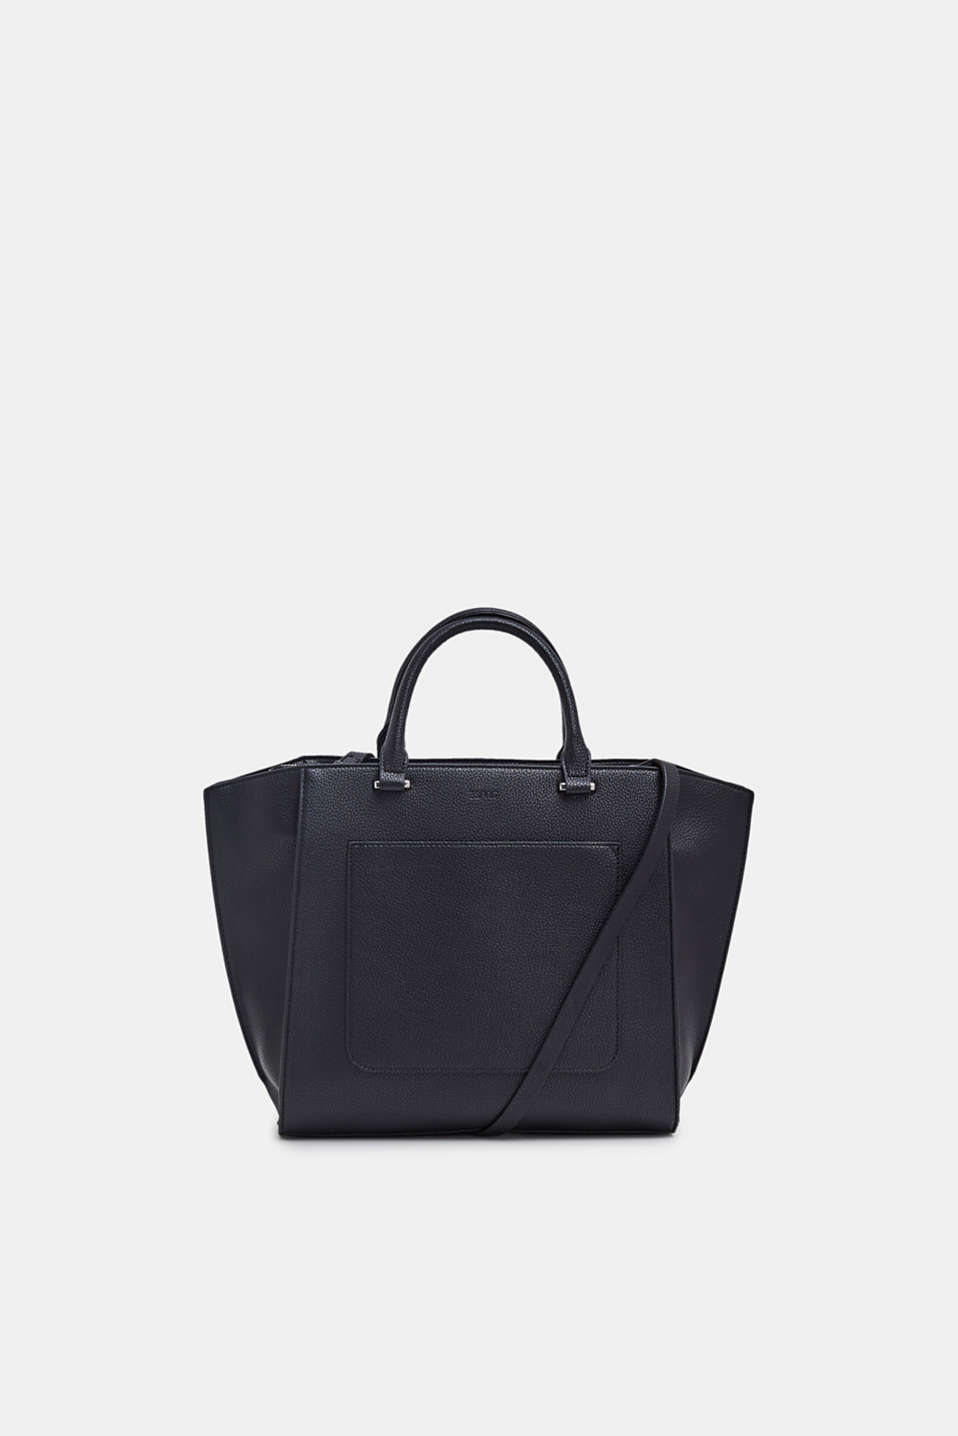 Esprit - City bag in leerlook